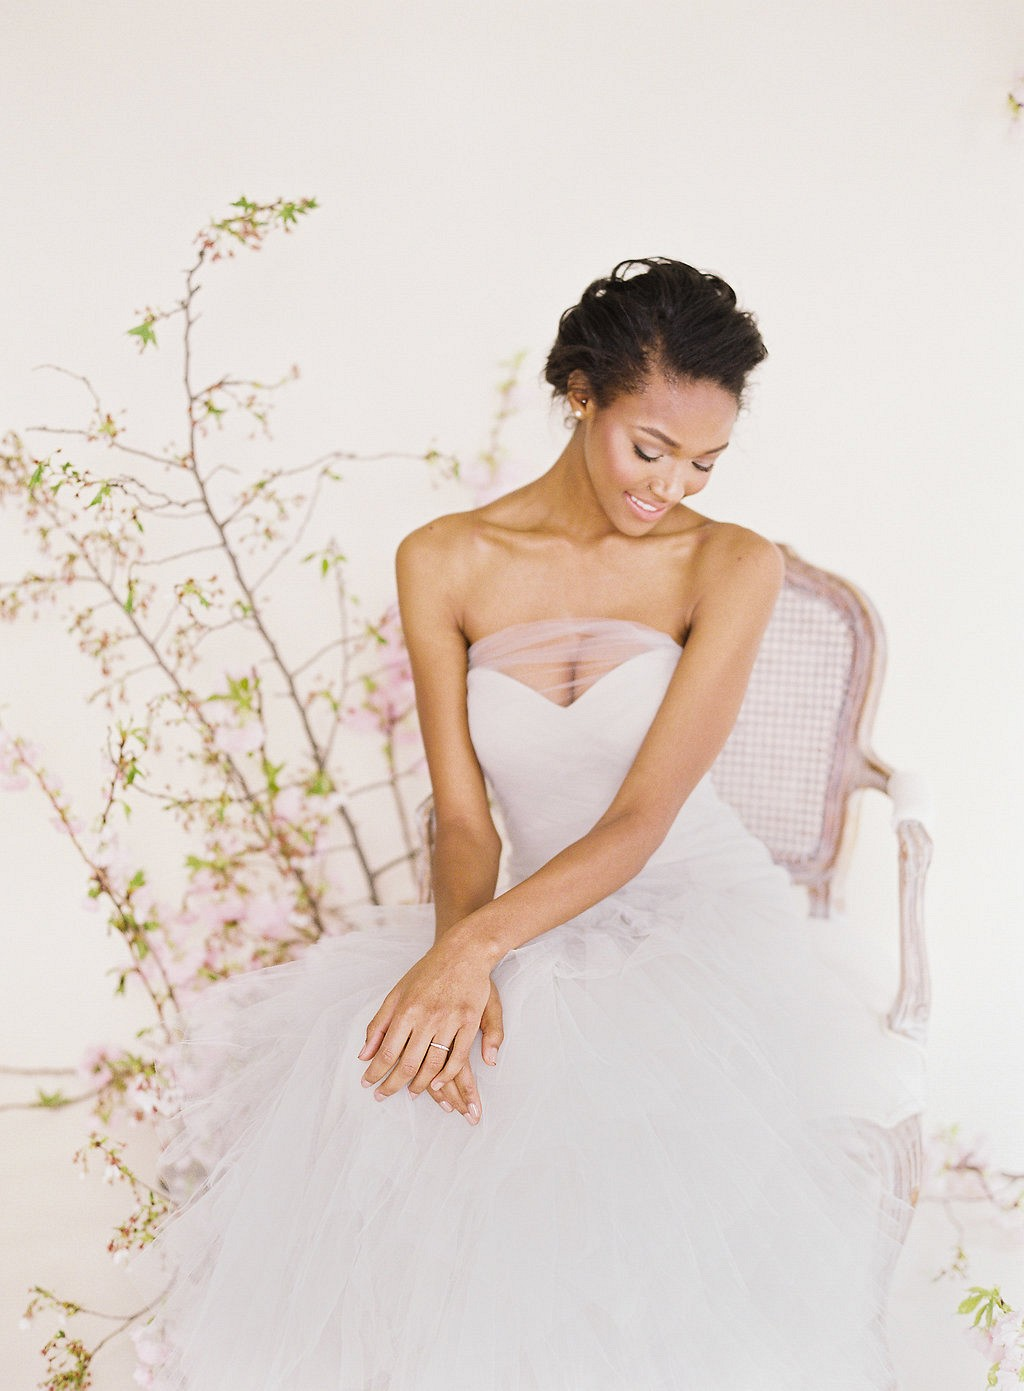 Angelic Cherry Blossom Spring Bridal Look